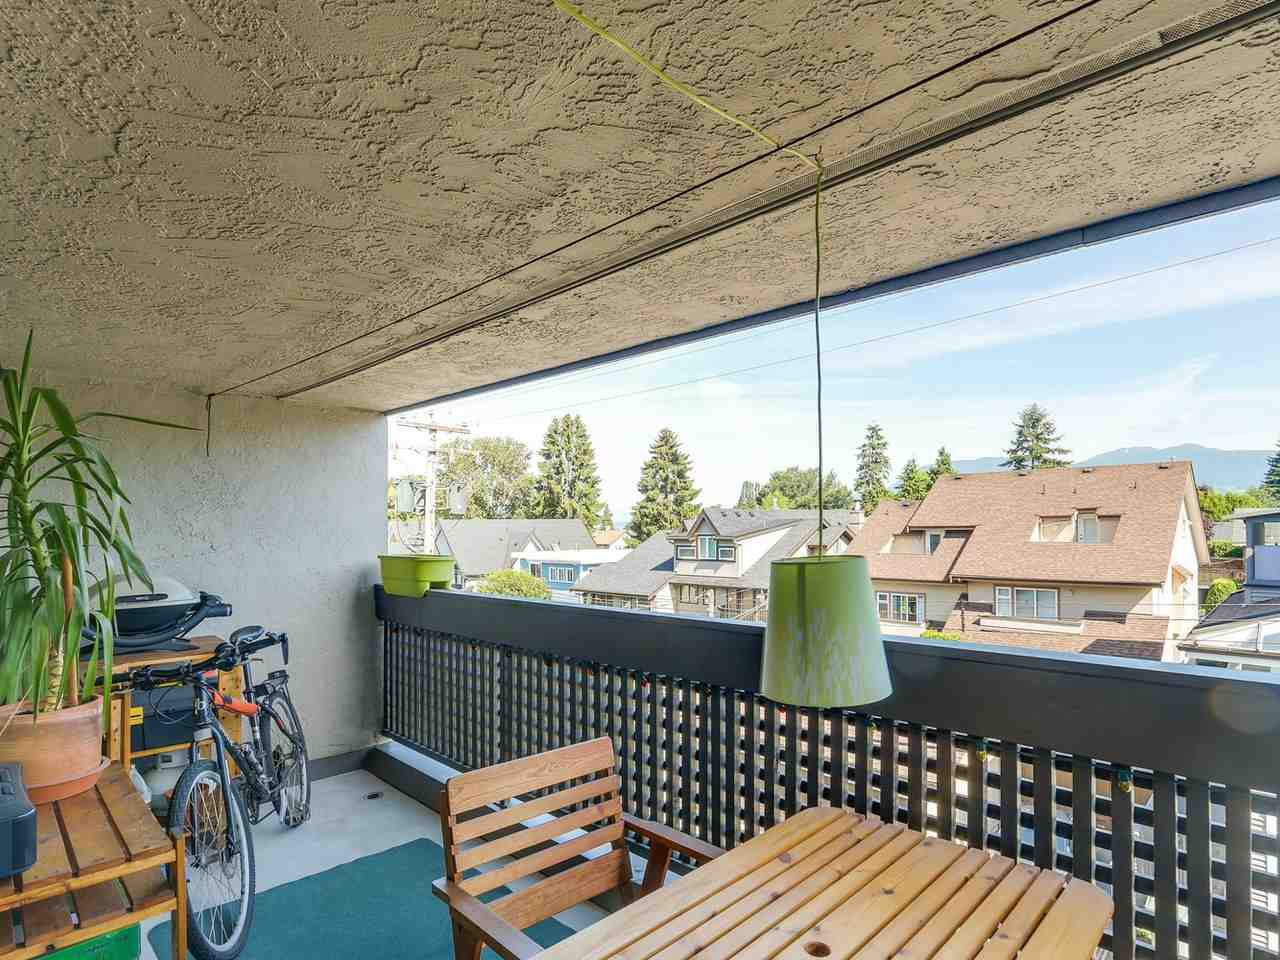 Main Photo: 309 1977 STEPHENS STREET in Vancouver: Kitsilano Condo for sale (Vancouver West)  : MLS®# R2183869